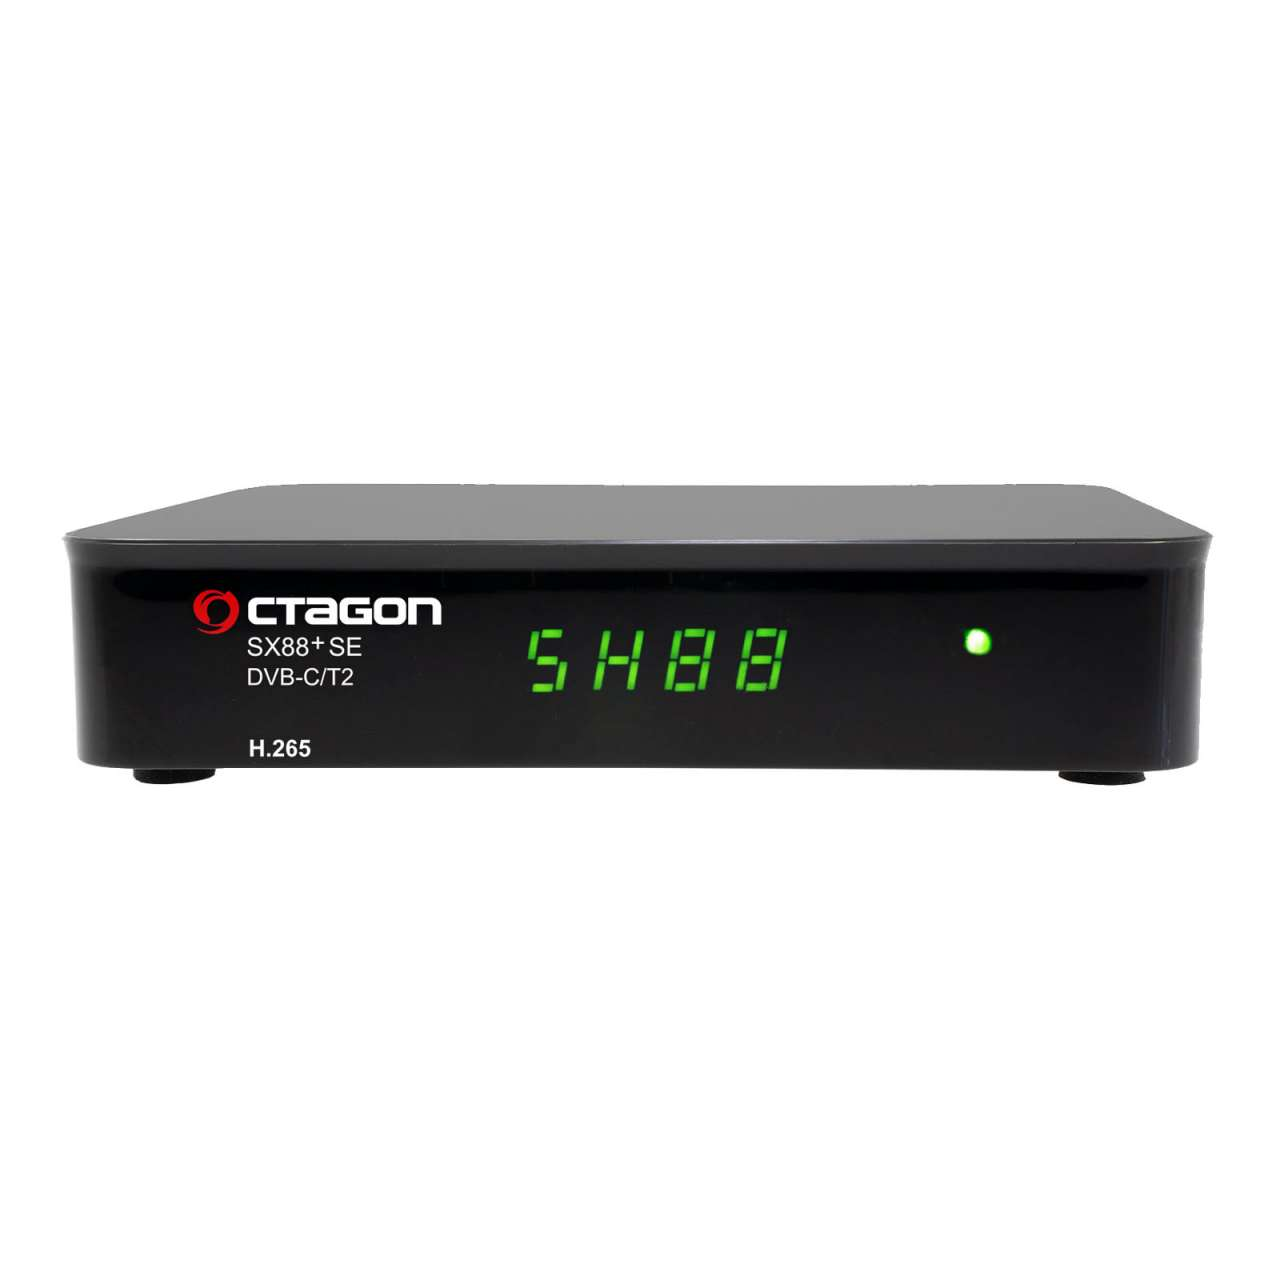 Octagon SX88+ SE H.265 HD Full HD DVB-C/T2 Hybrid Tuner+TV IP Receiver RECOCT108